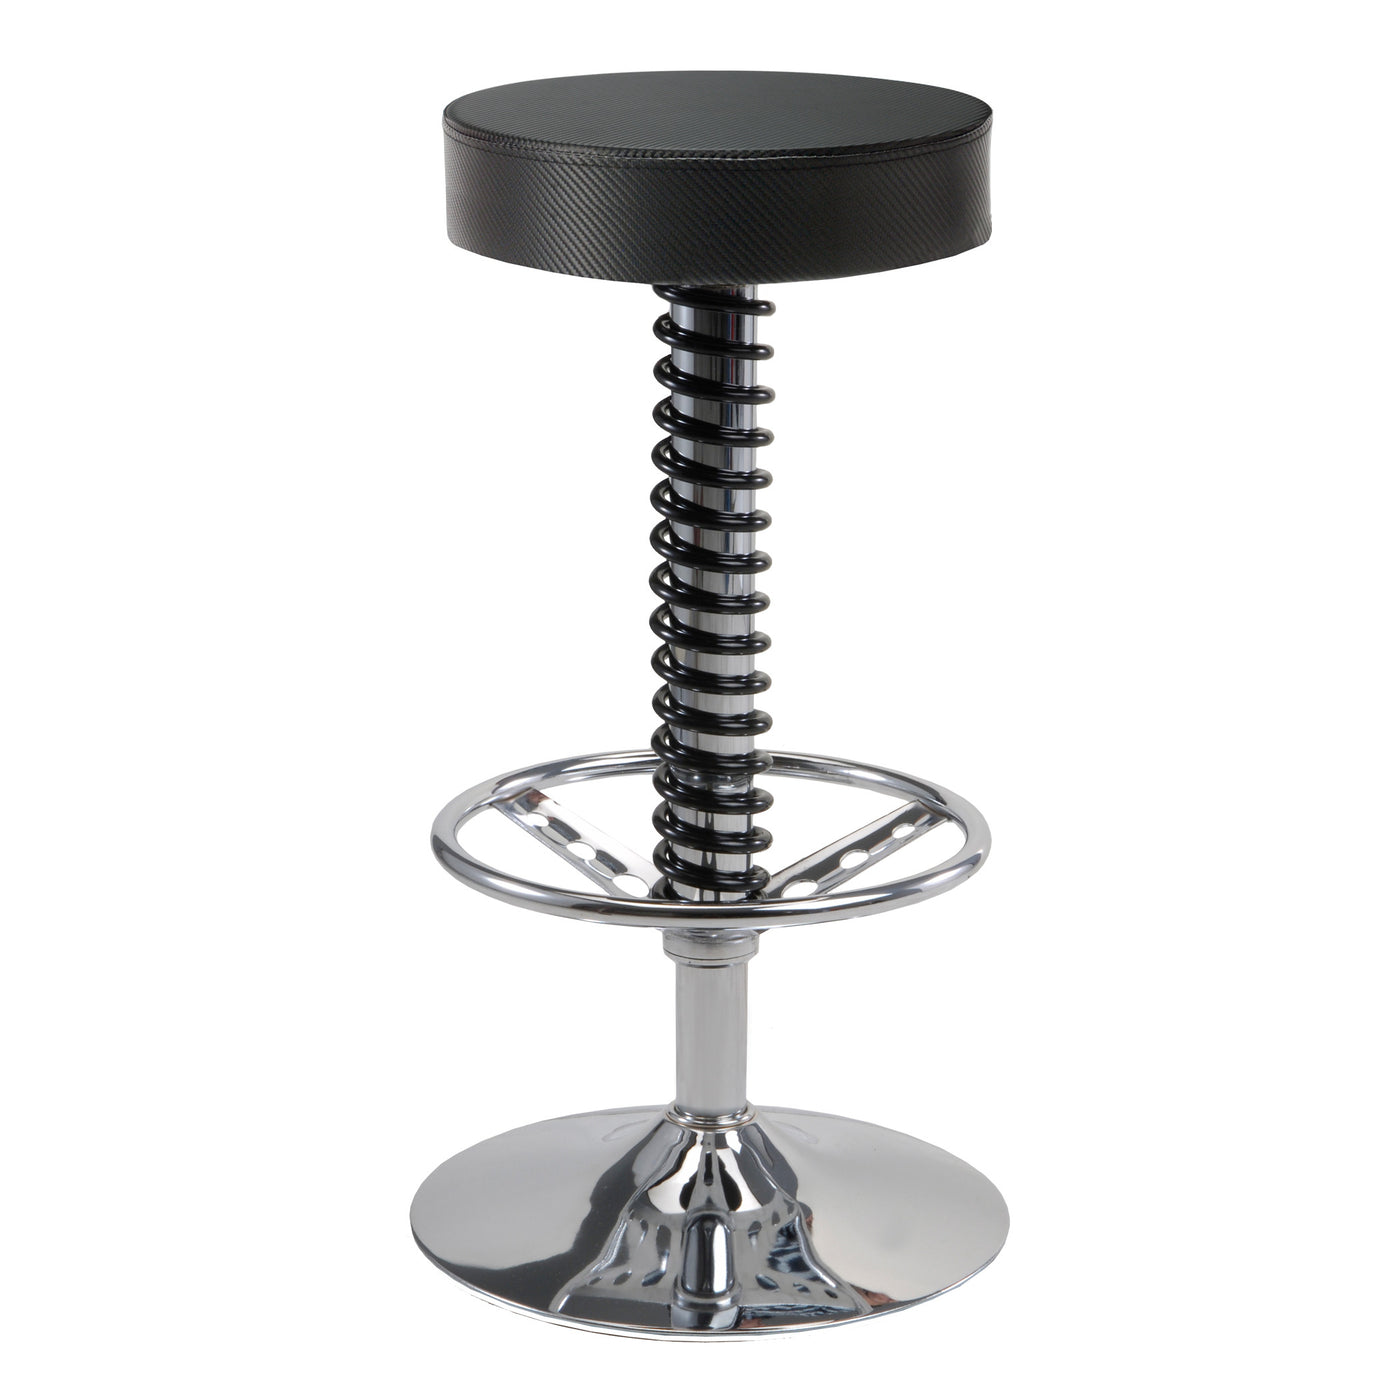 pin is stools racer big thing automotive airbrush scary stool this bar designs